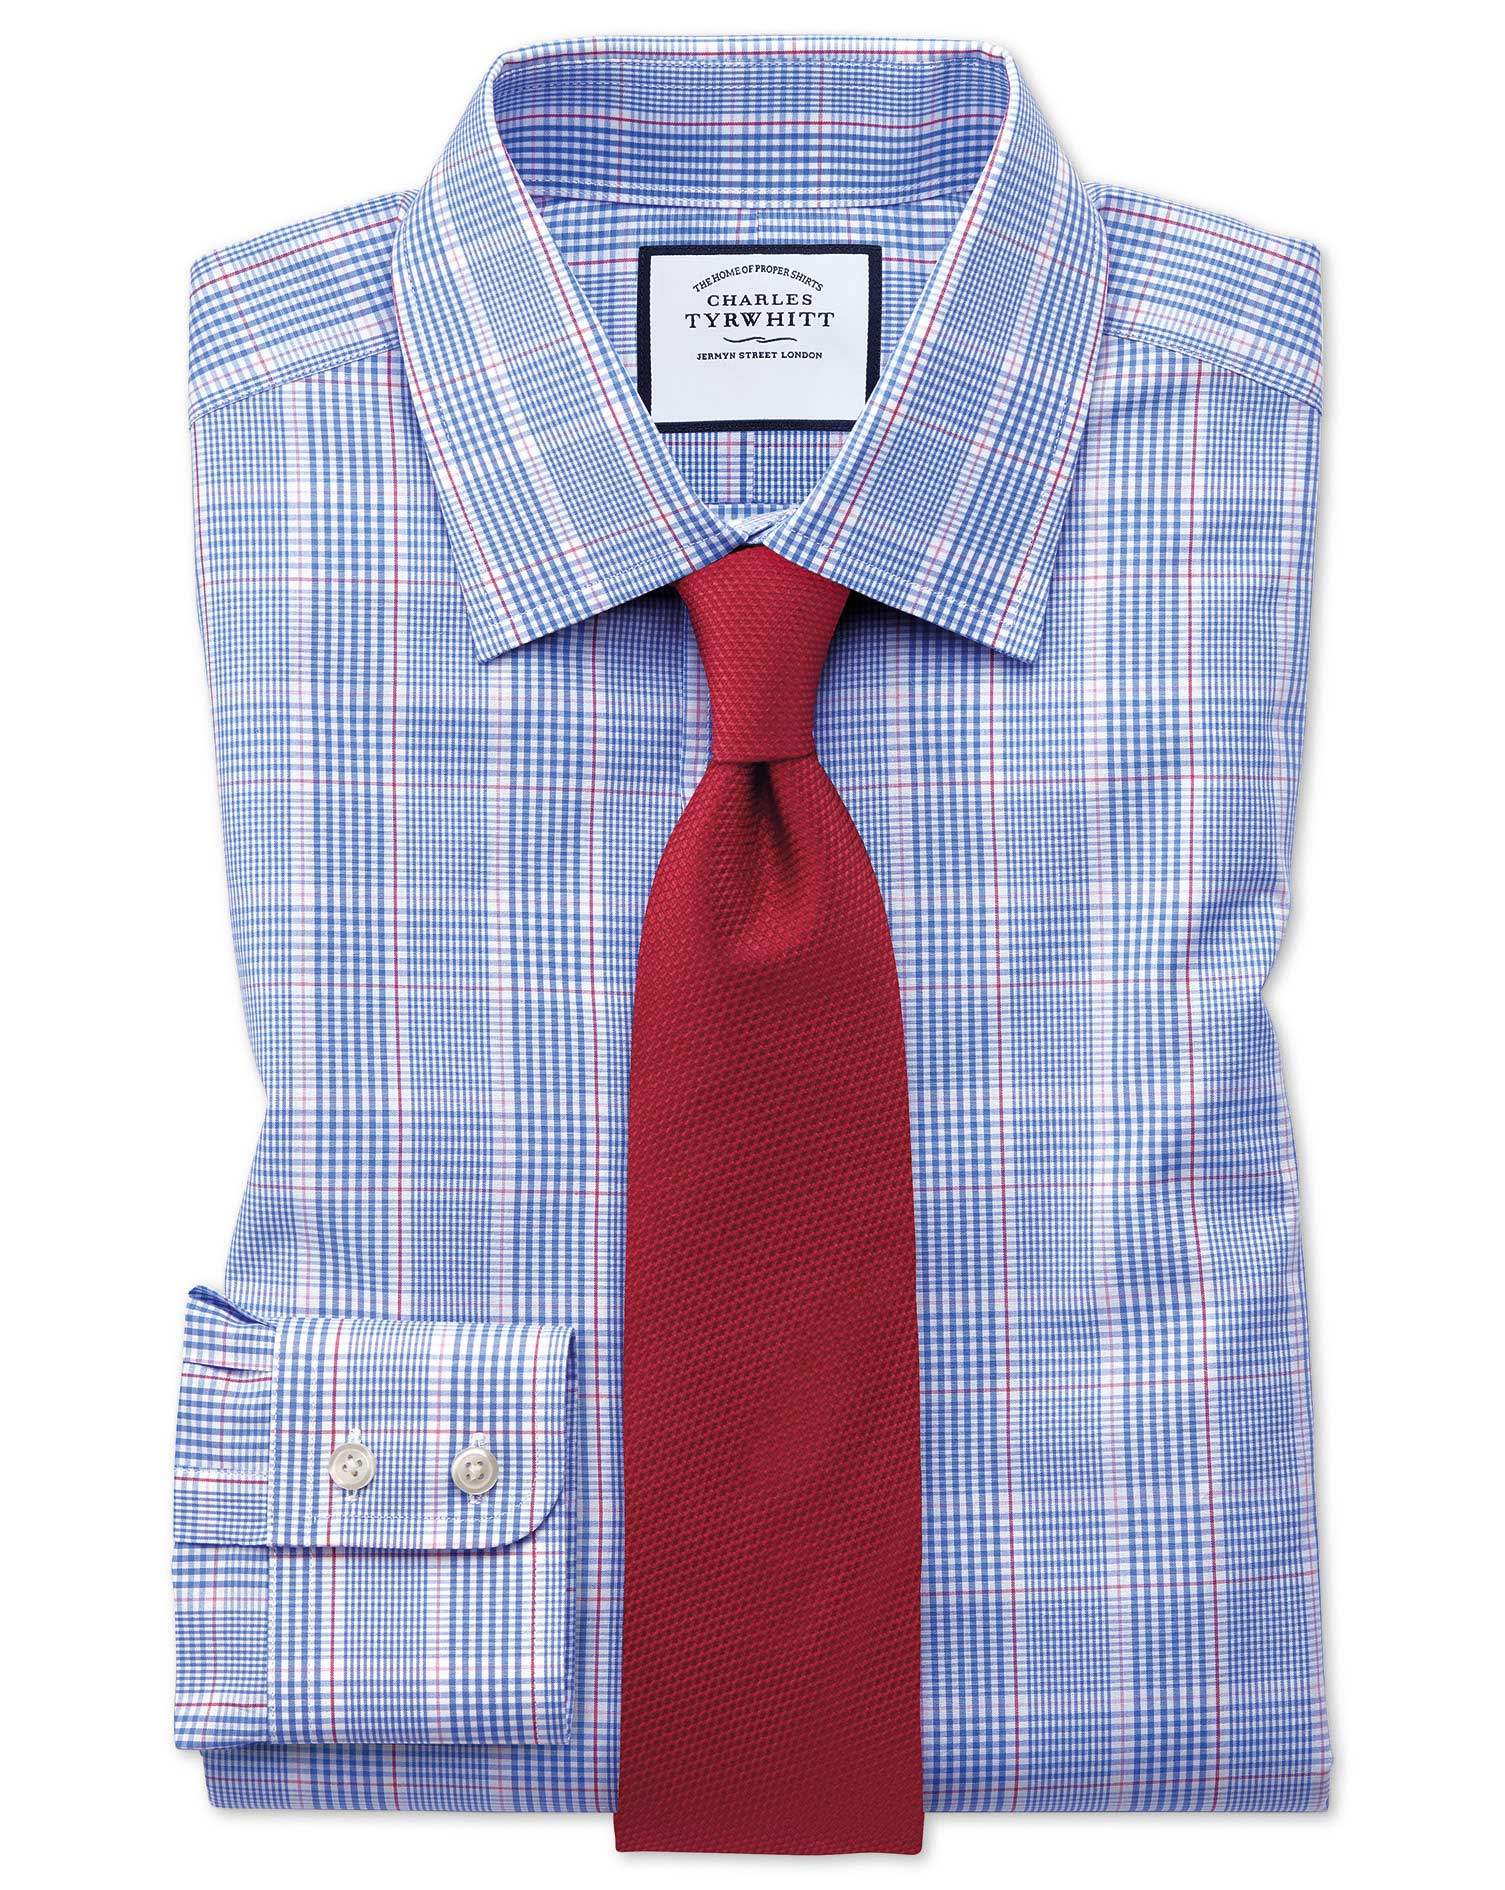 Classic Fit Prince Of Wales Check Blue and Pink Cotton Formal Shirt Single Cuff Size 16.5/34 by Char